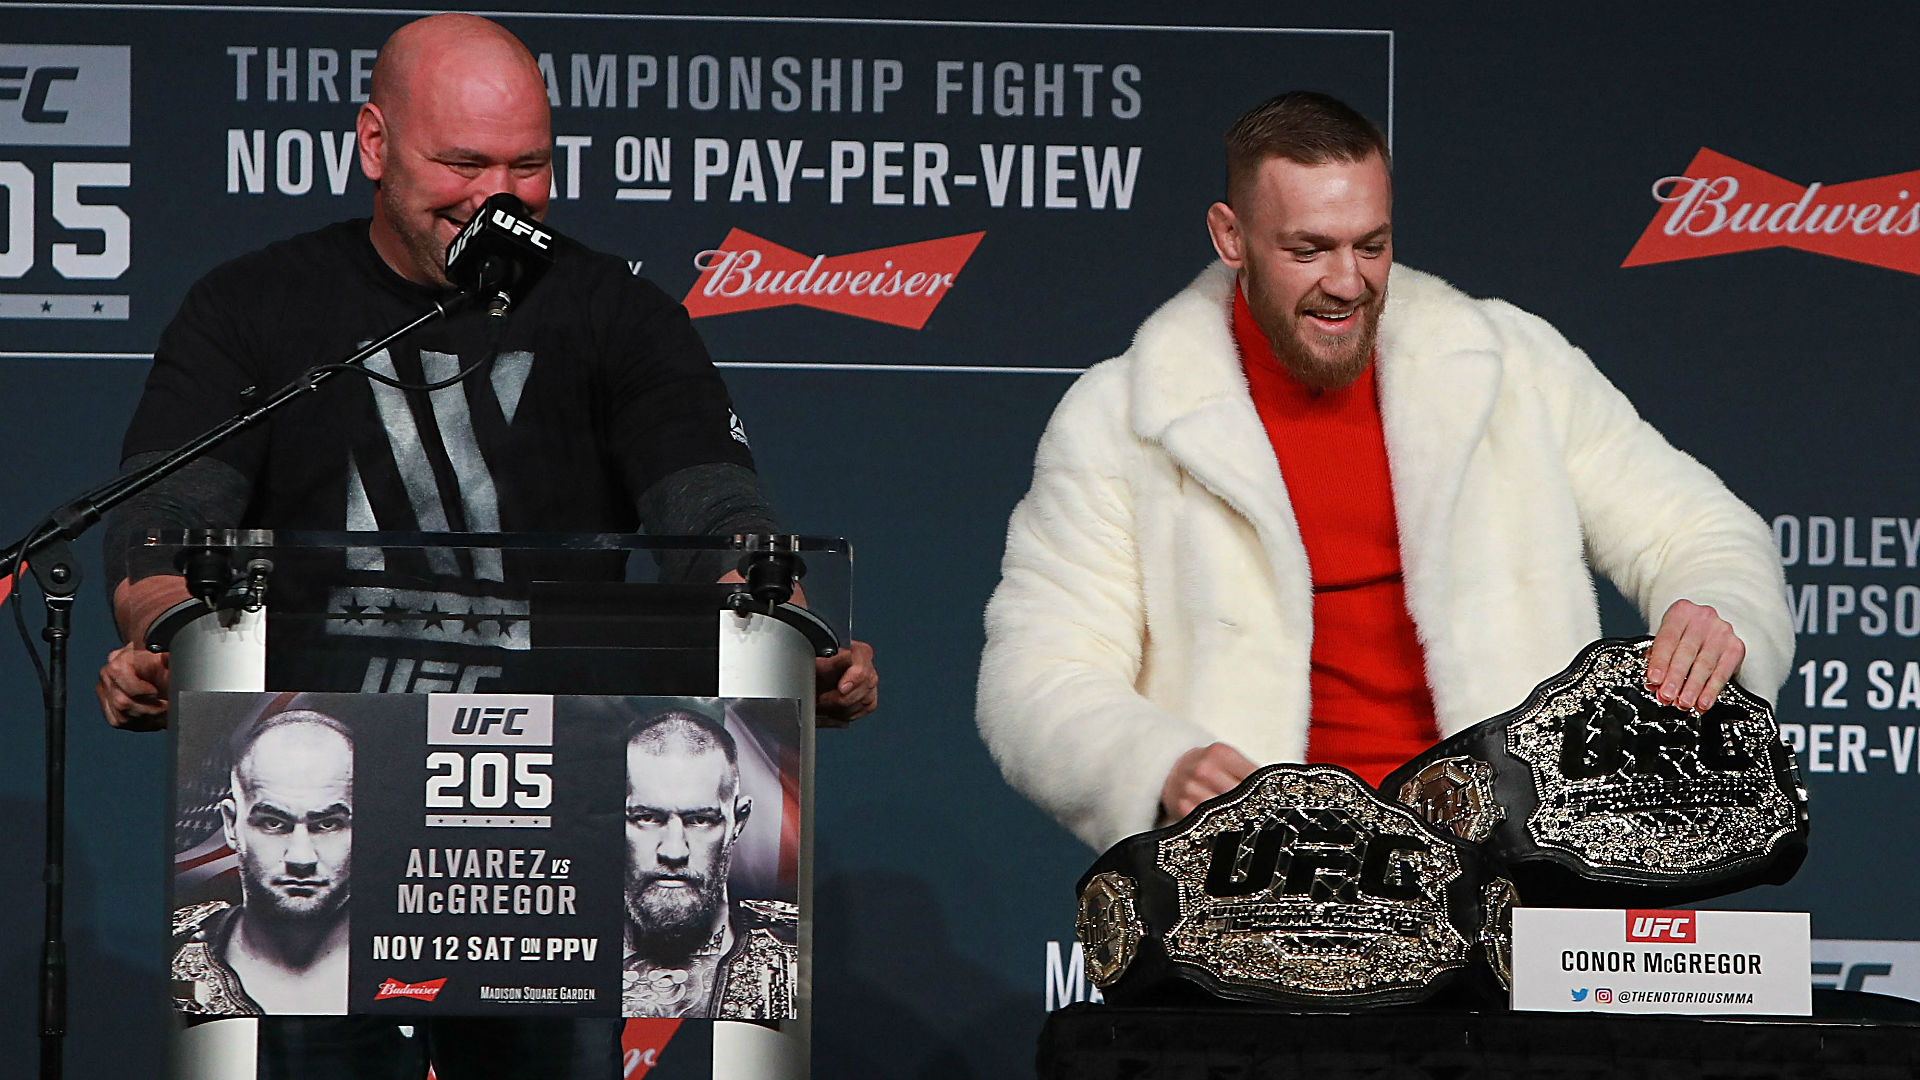 UFC's Dana White says McGregor would destroy Mayweather